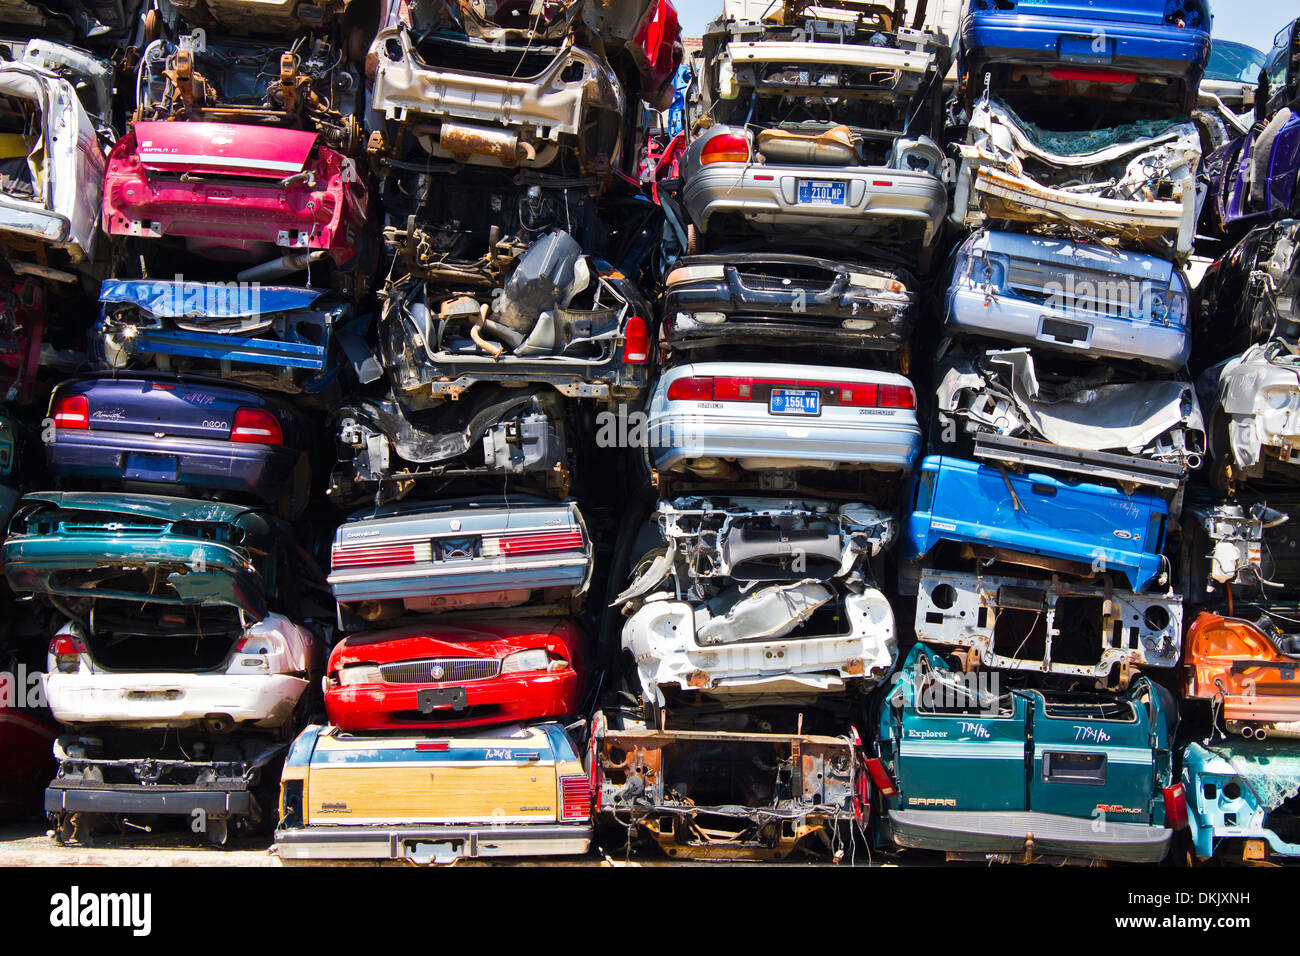 Junk Pile Stock Photos & Junk Pile Stock Images - Alamy